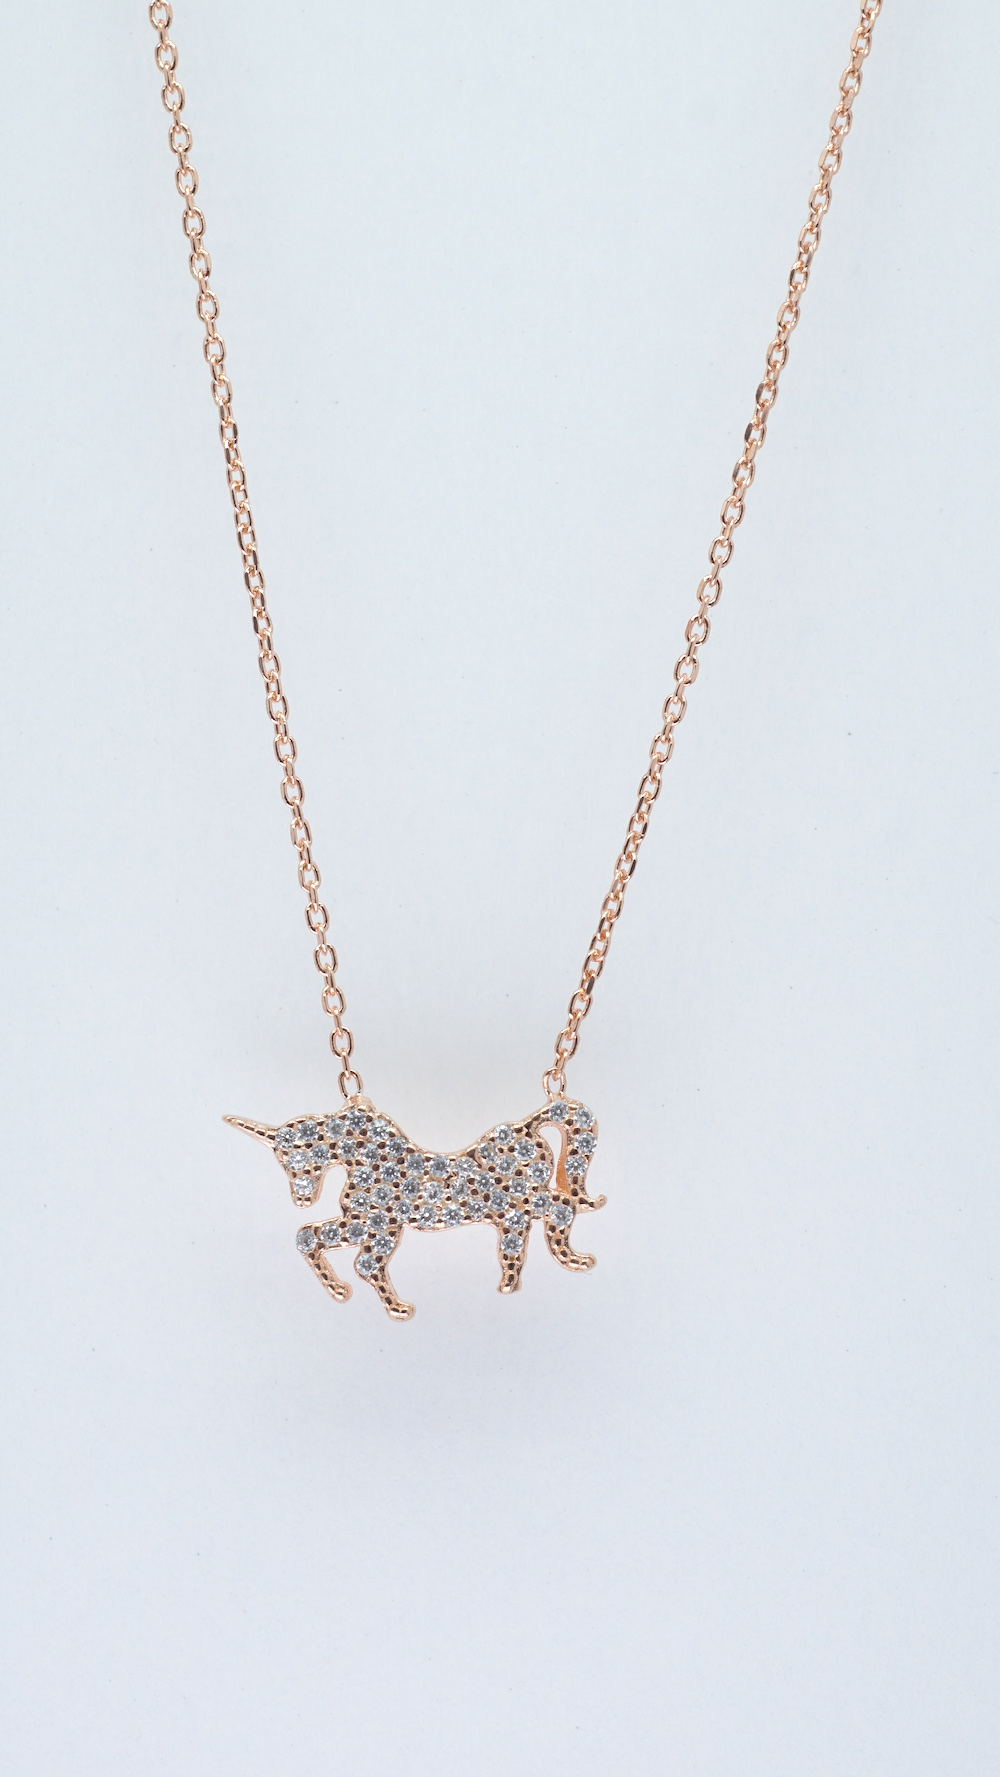 Unicorn Necklace - Rosegold - Simple Giltter Collection